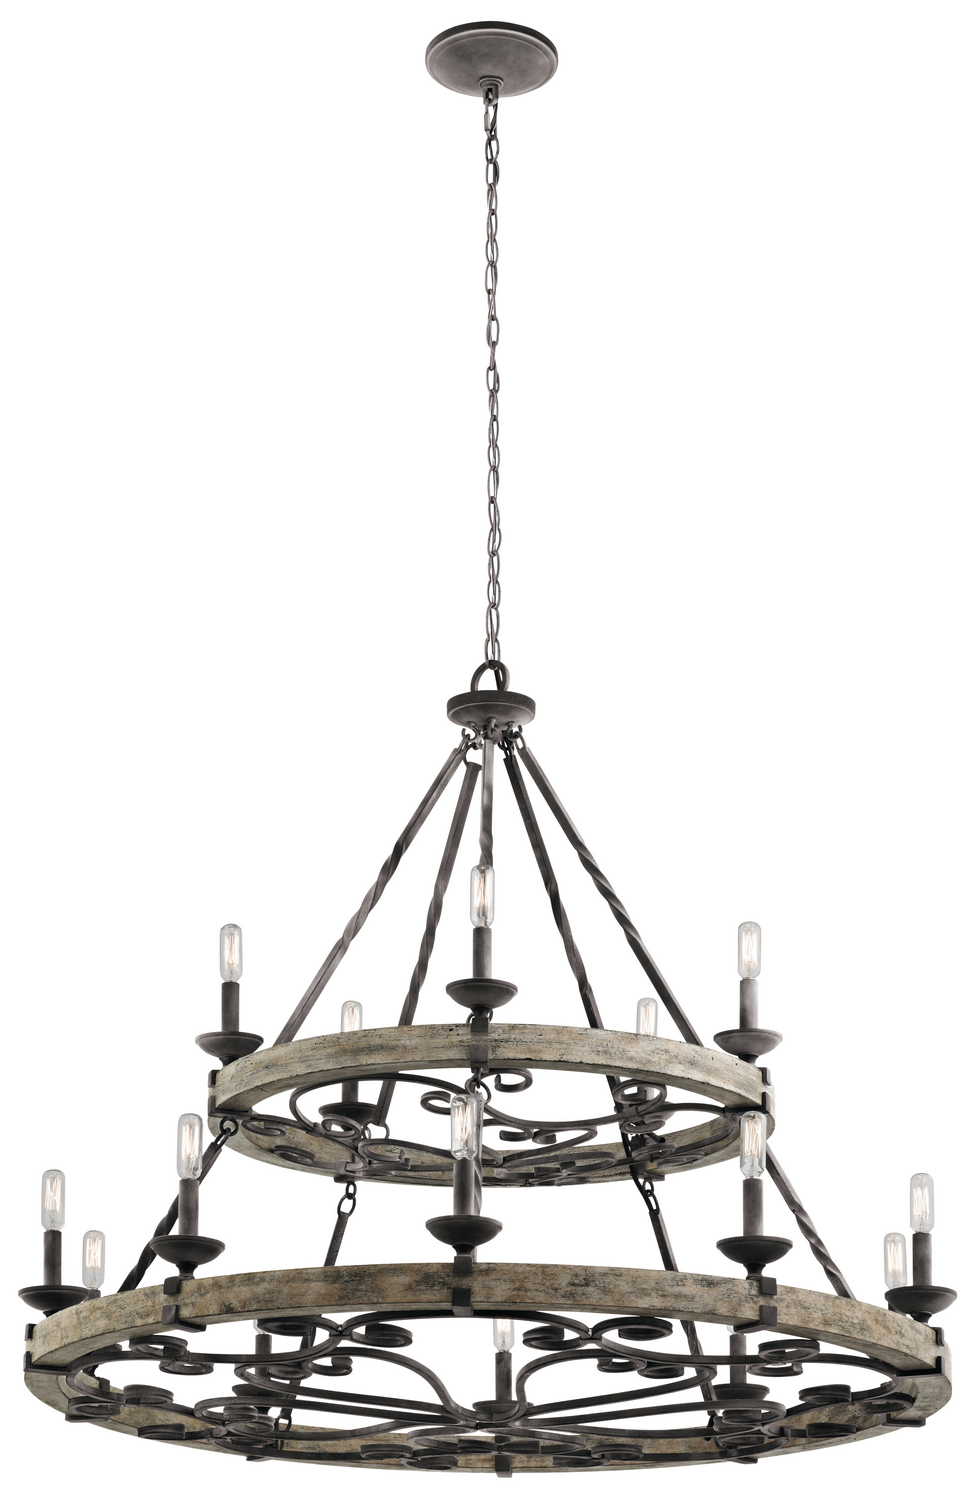 15 Light Chandelier from the Taulbee collection by Kichler 43826WZC